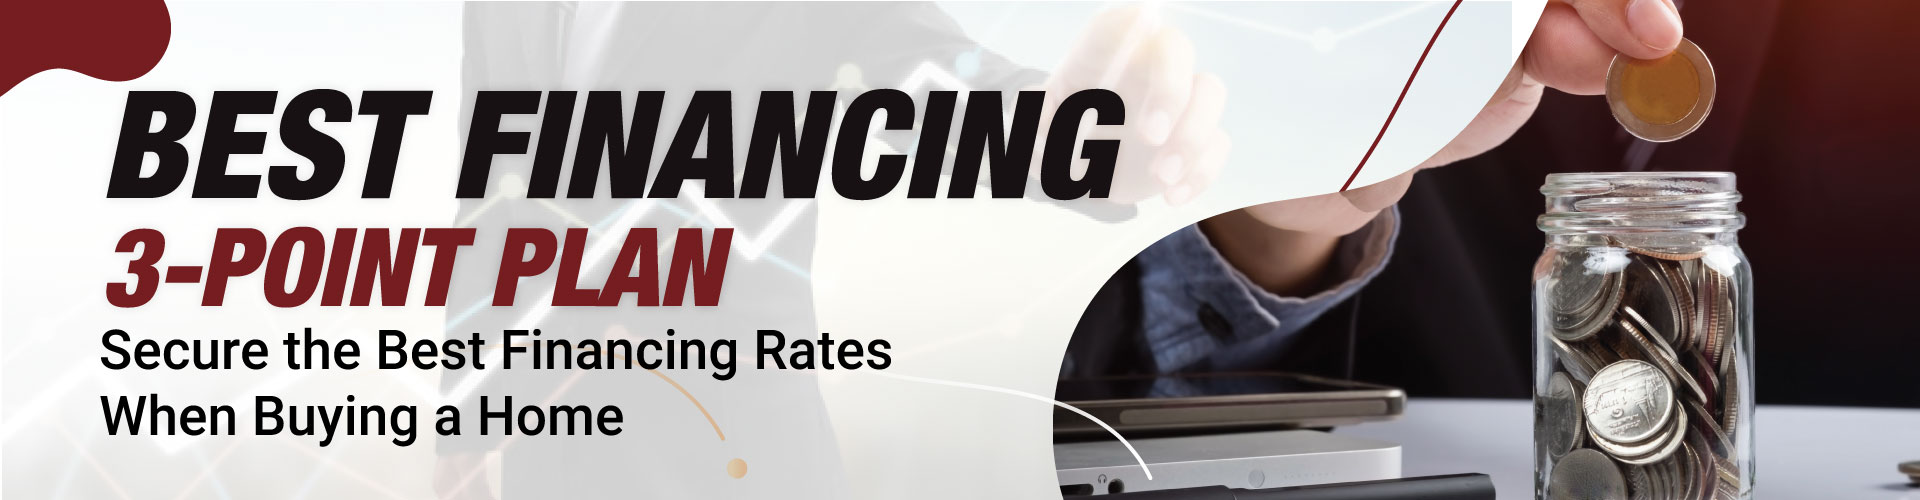 Best Financing A 3-Point Plan Image